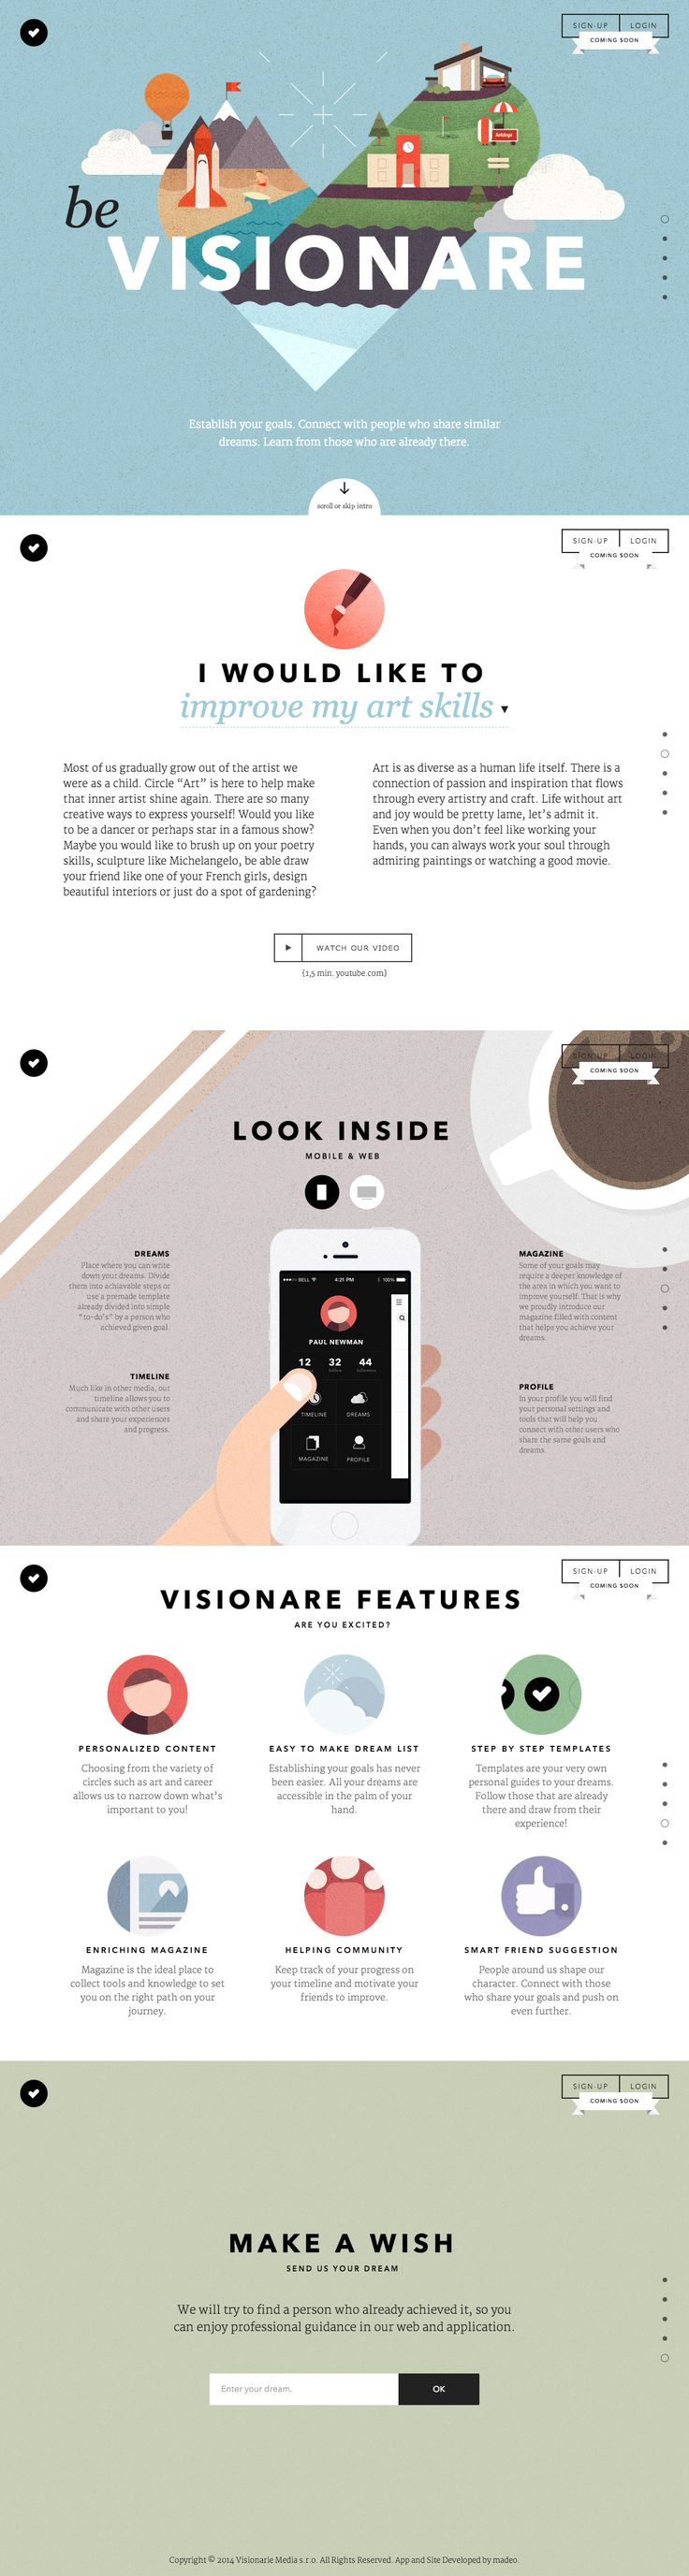 Be Visionare - http://www.bevisionare.com - #webdesign #illustration #animation Get Free Domain on http://cp.cx